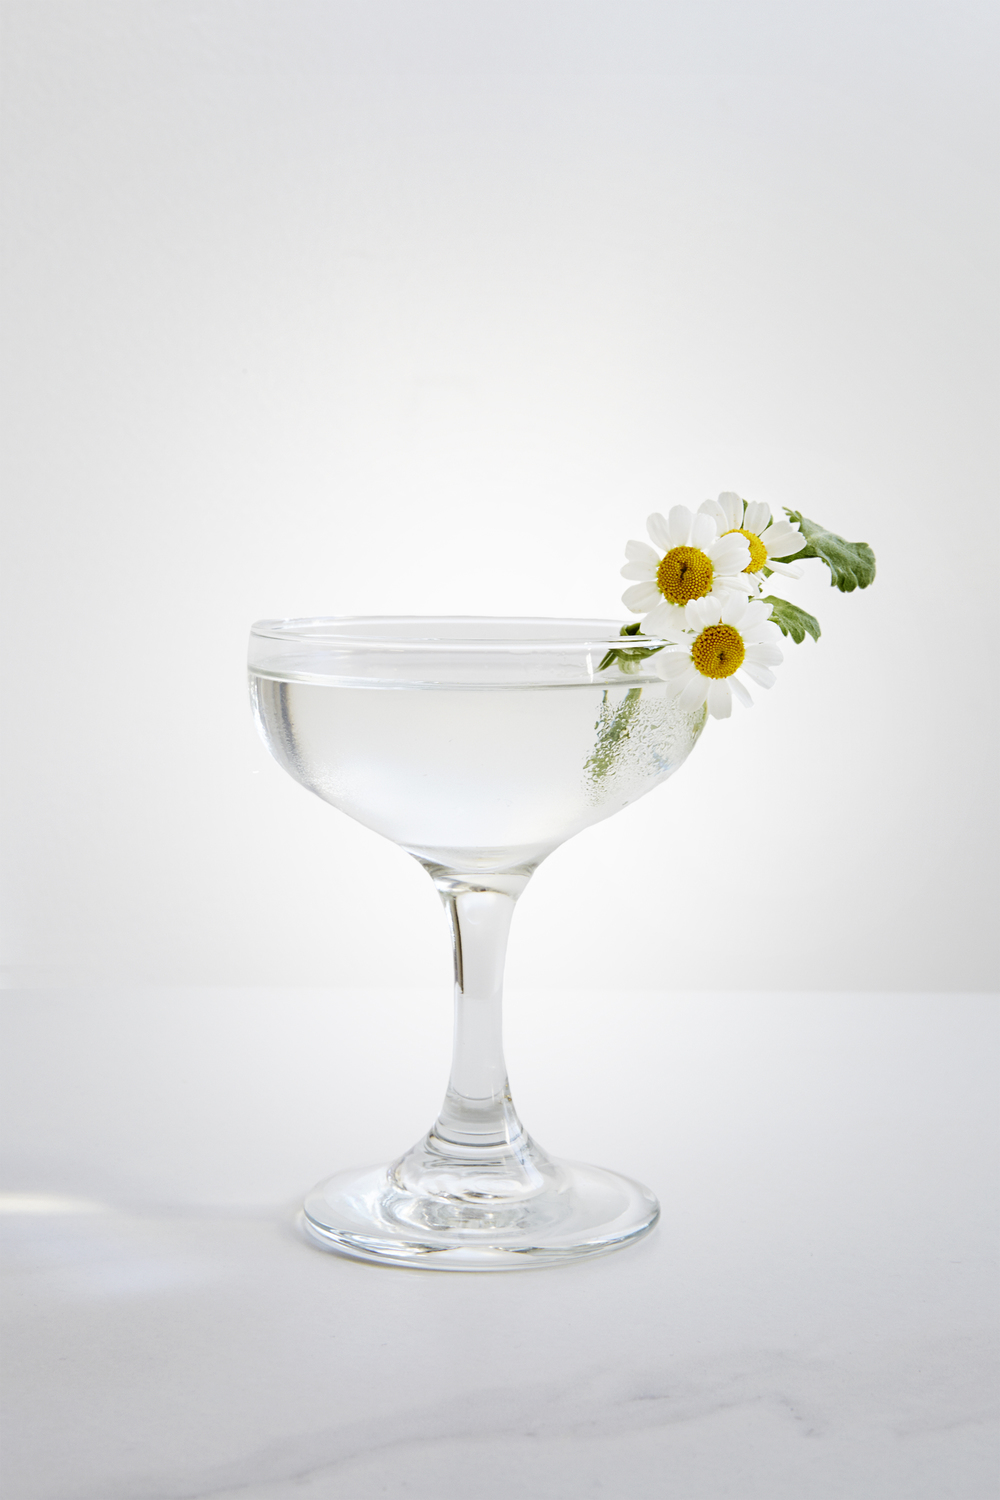 MARY ASTOR 2 oz Gin 3/4 oz Chareau 1/2 oz Lillet Blanc Stir ingredients over ice. Strain into coupe and garnish with edible flowers. Cocktail by Pablo Moix